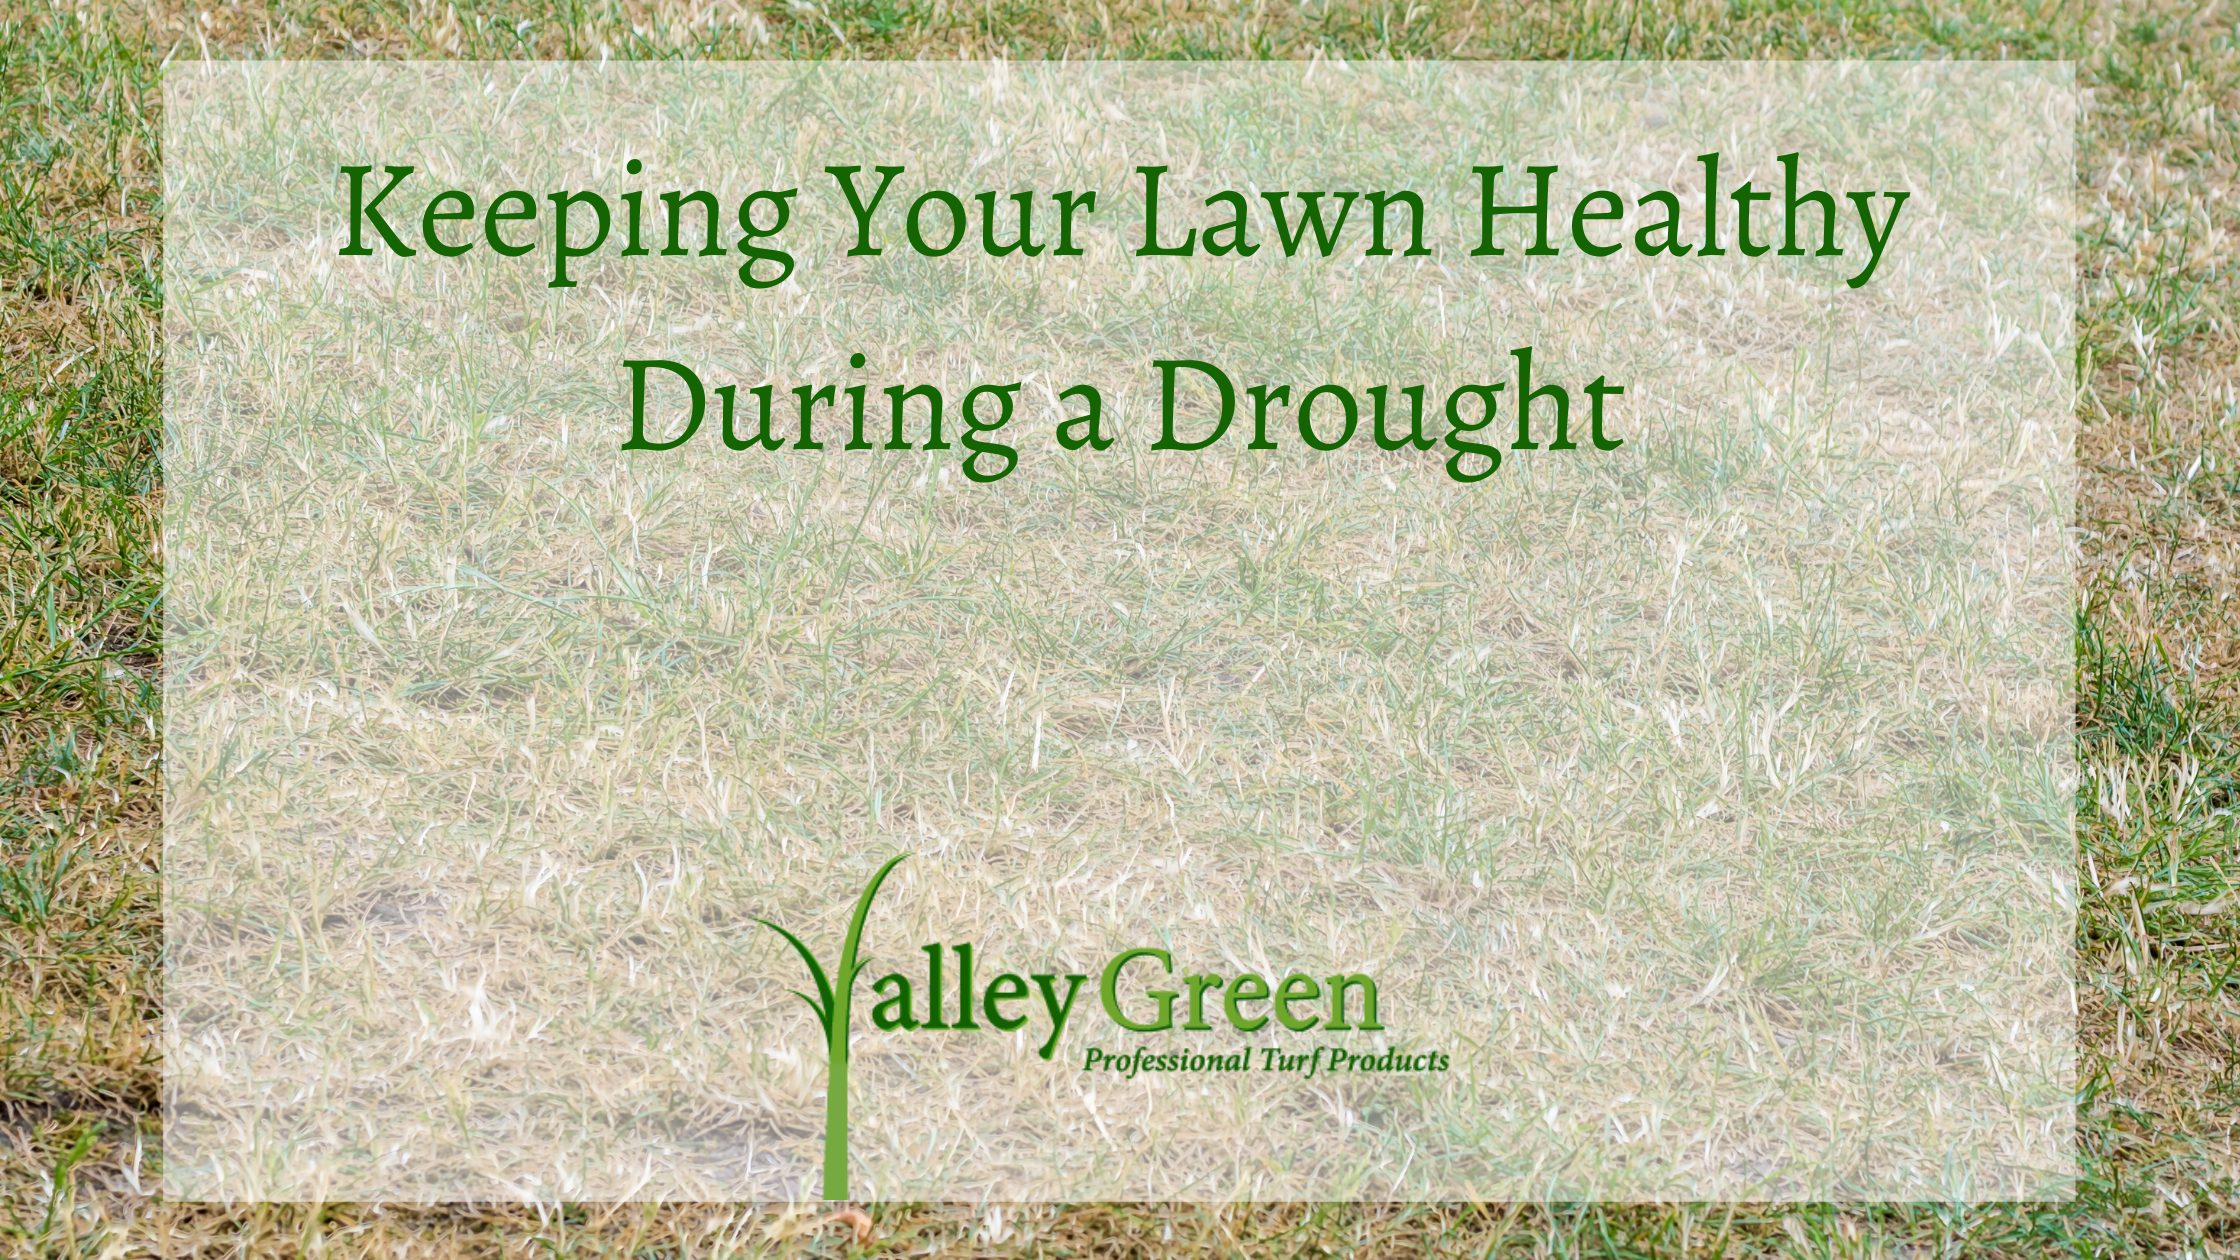 Keeping Your Lawn Healthy During a Drought